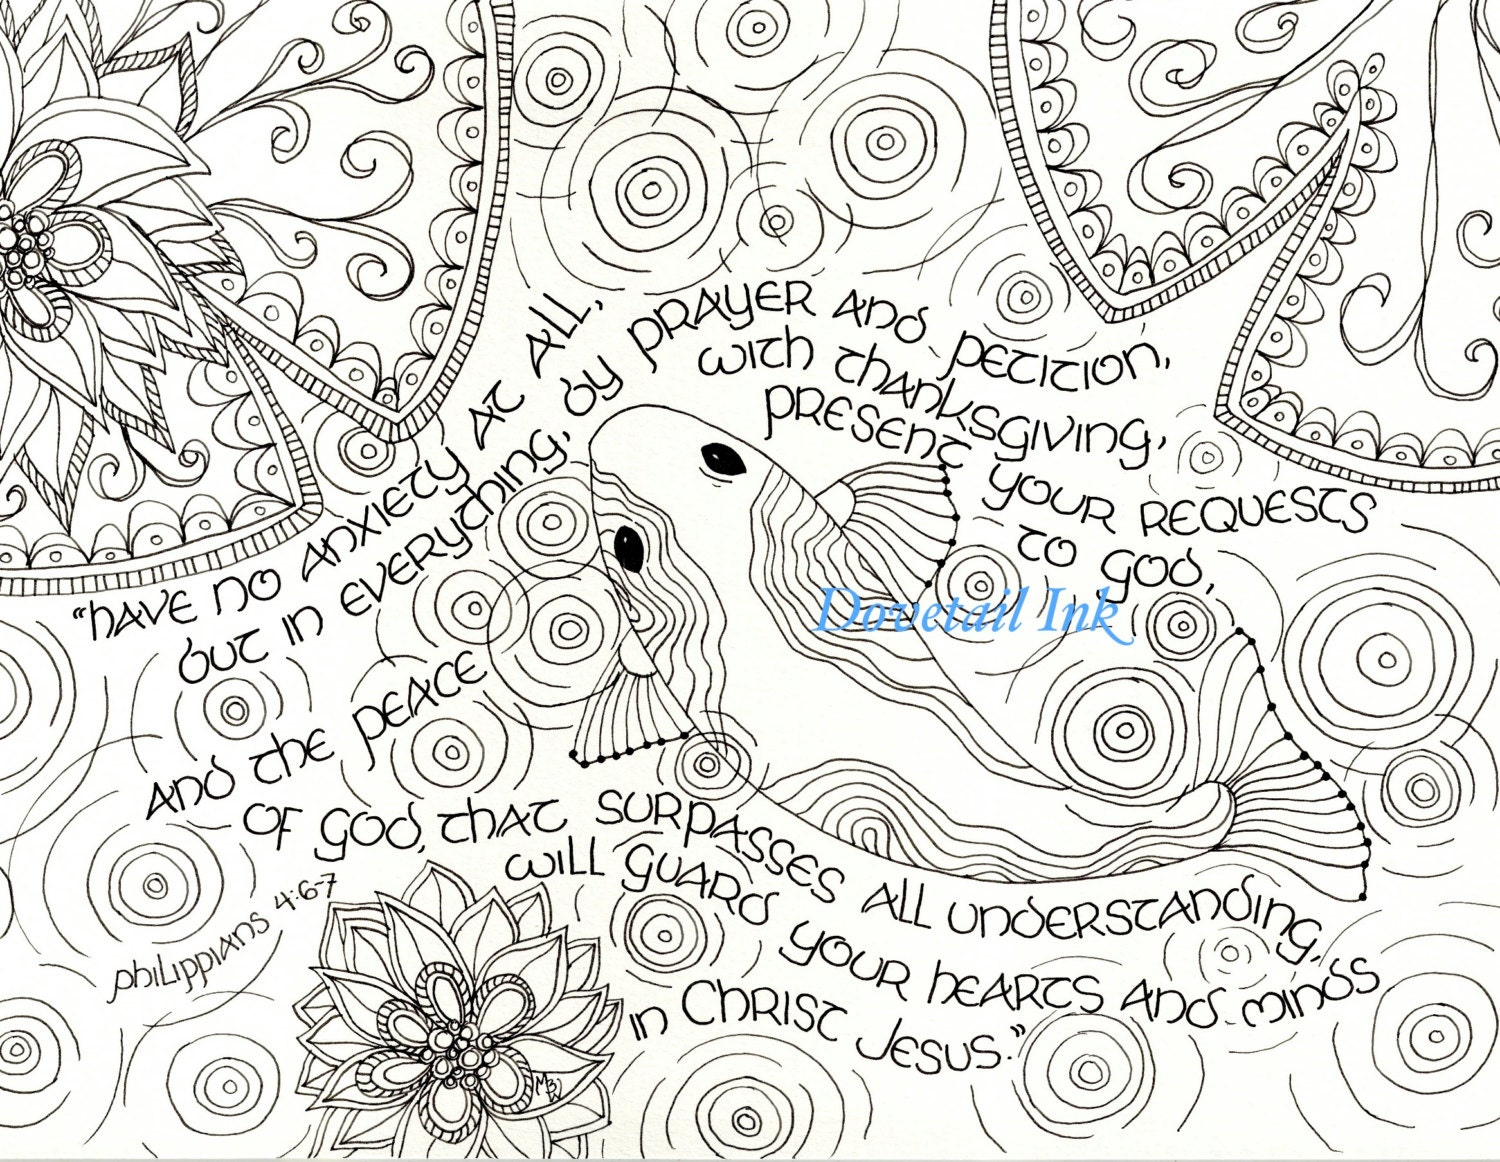 Printable Philippians 4 6-7 Scripture Art Coloring Page for